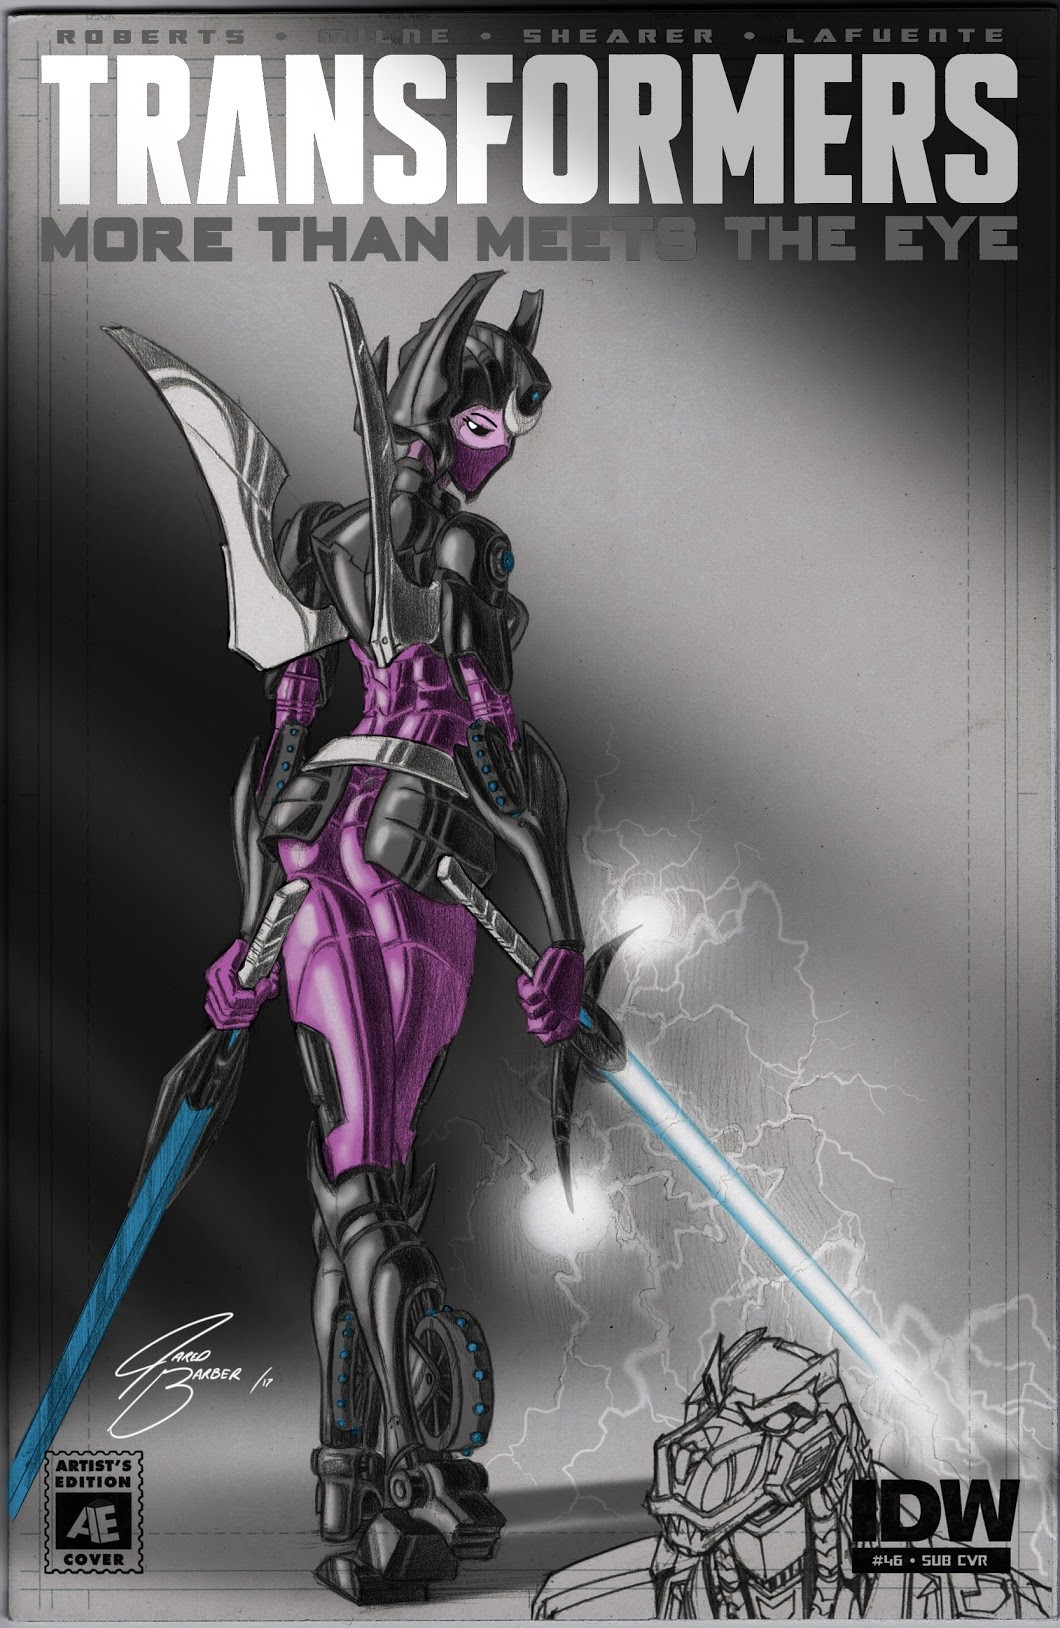 ArtStation - Transformers: Arcee blank comic illustration